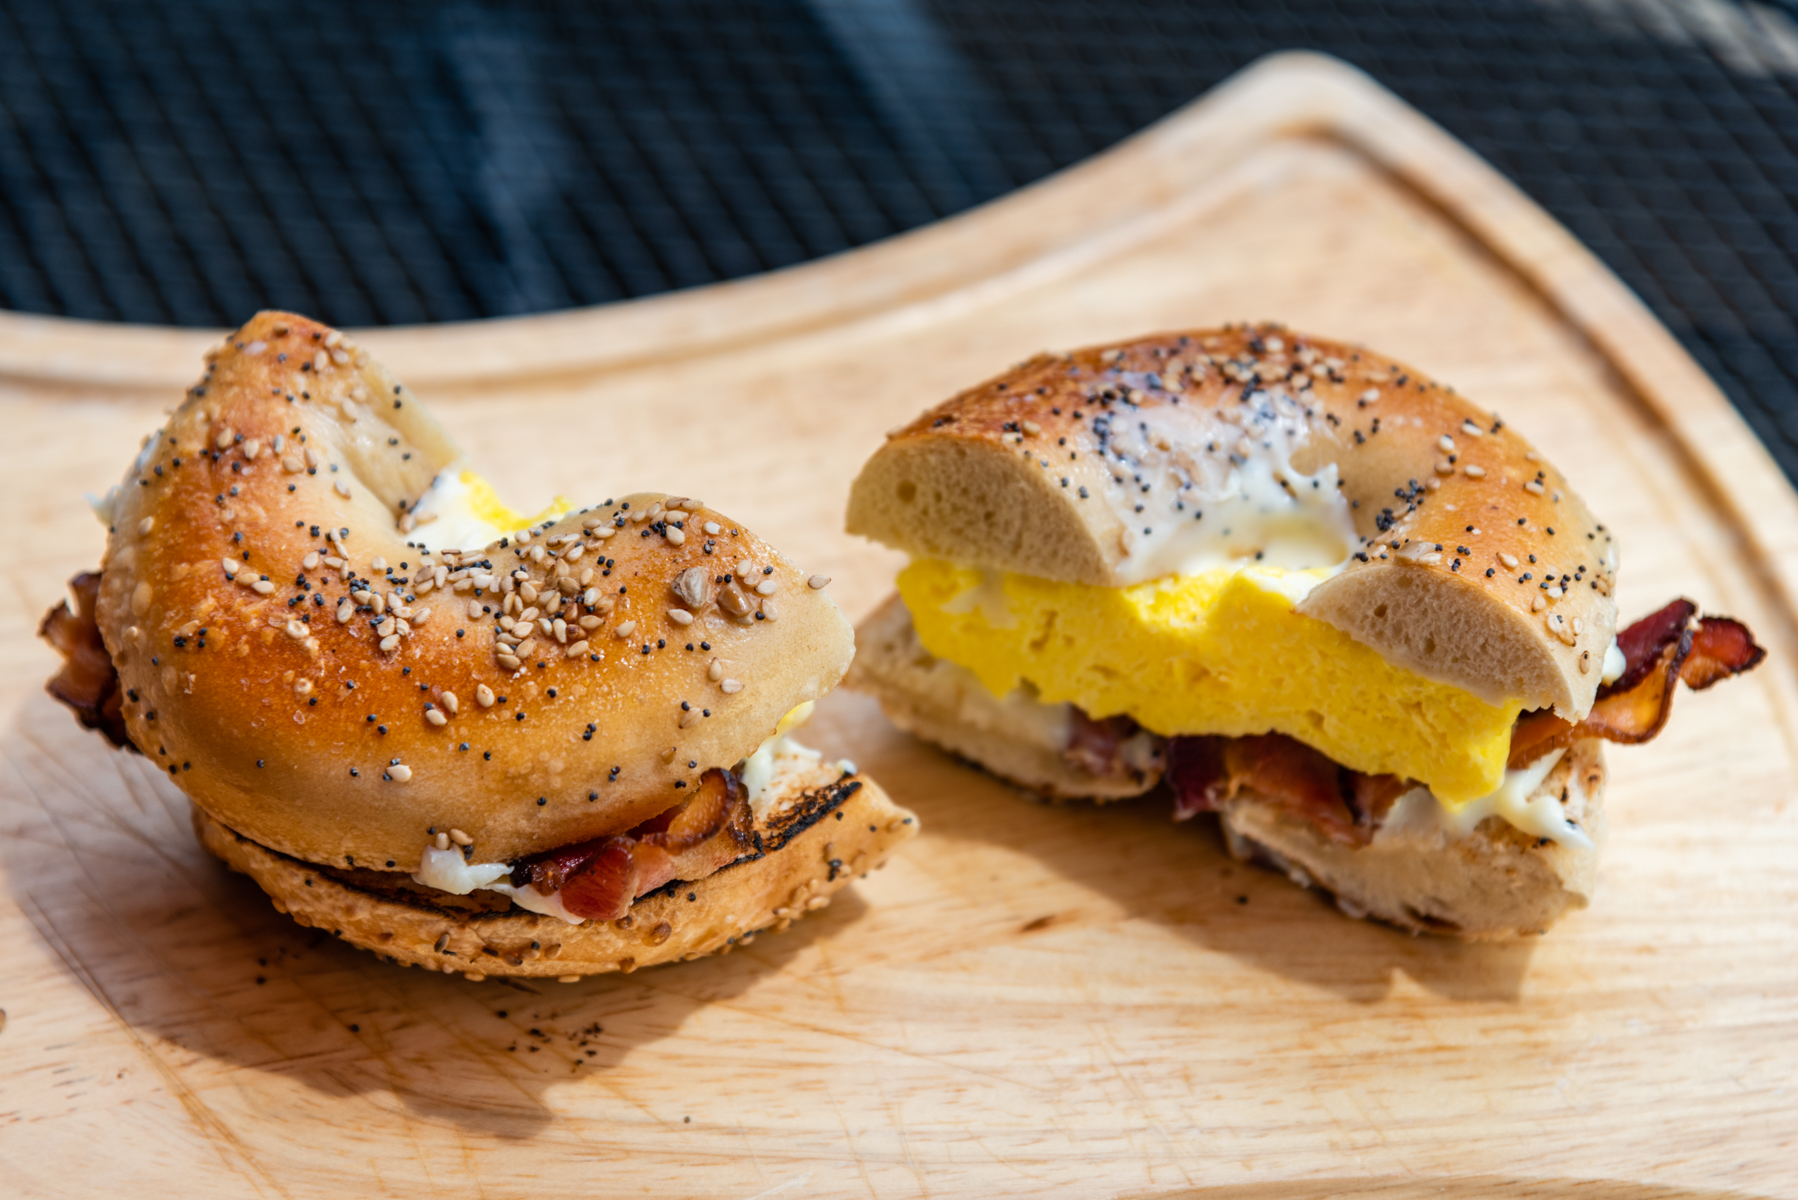 Bagel Sandwich - Bacon, Egg, and Cheese